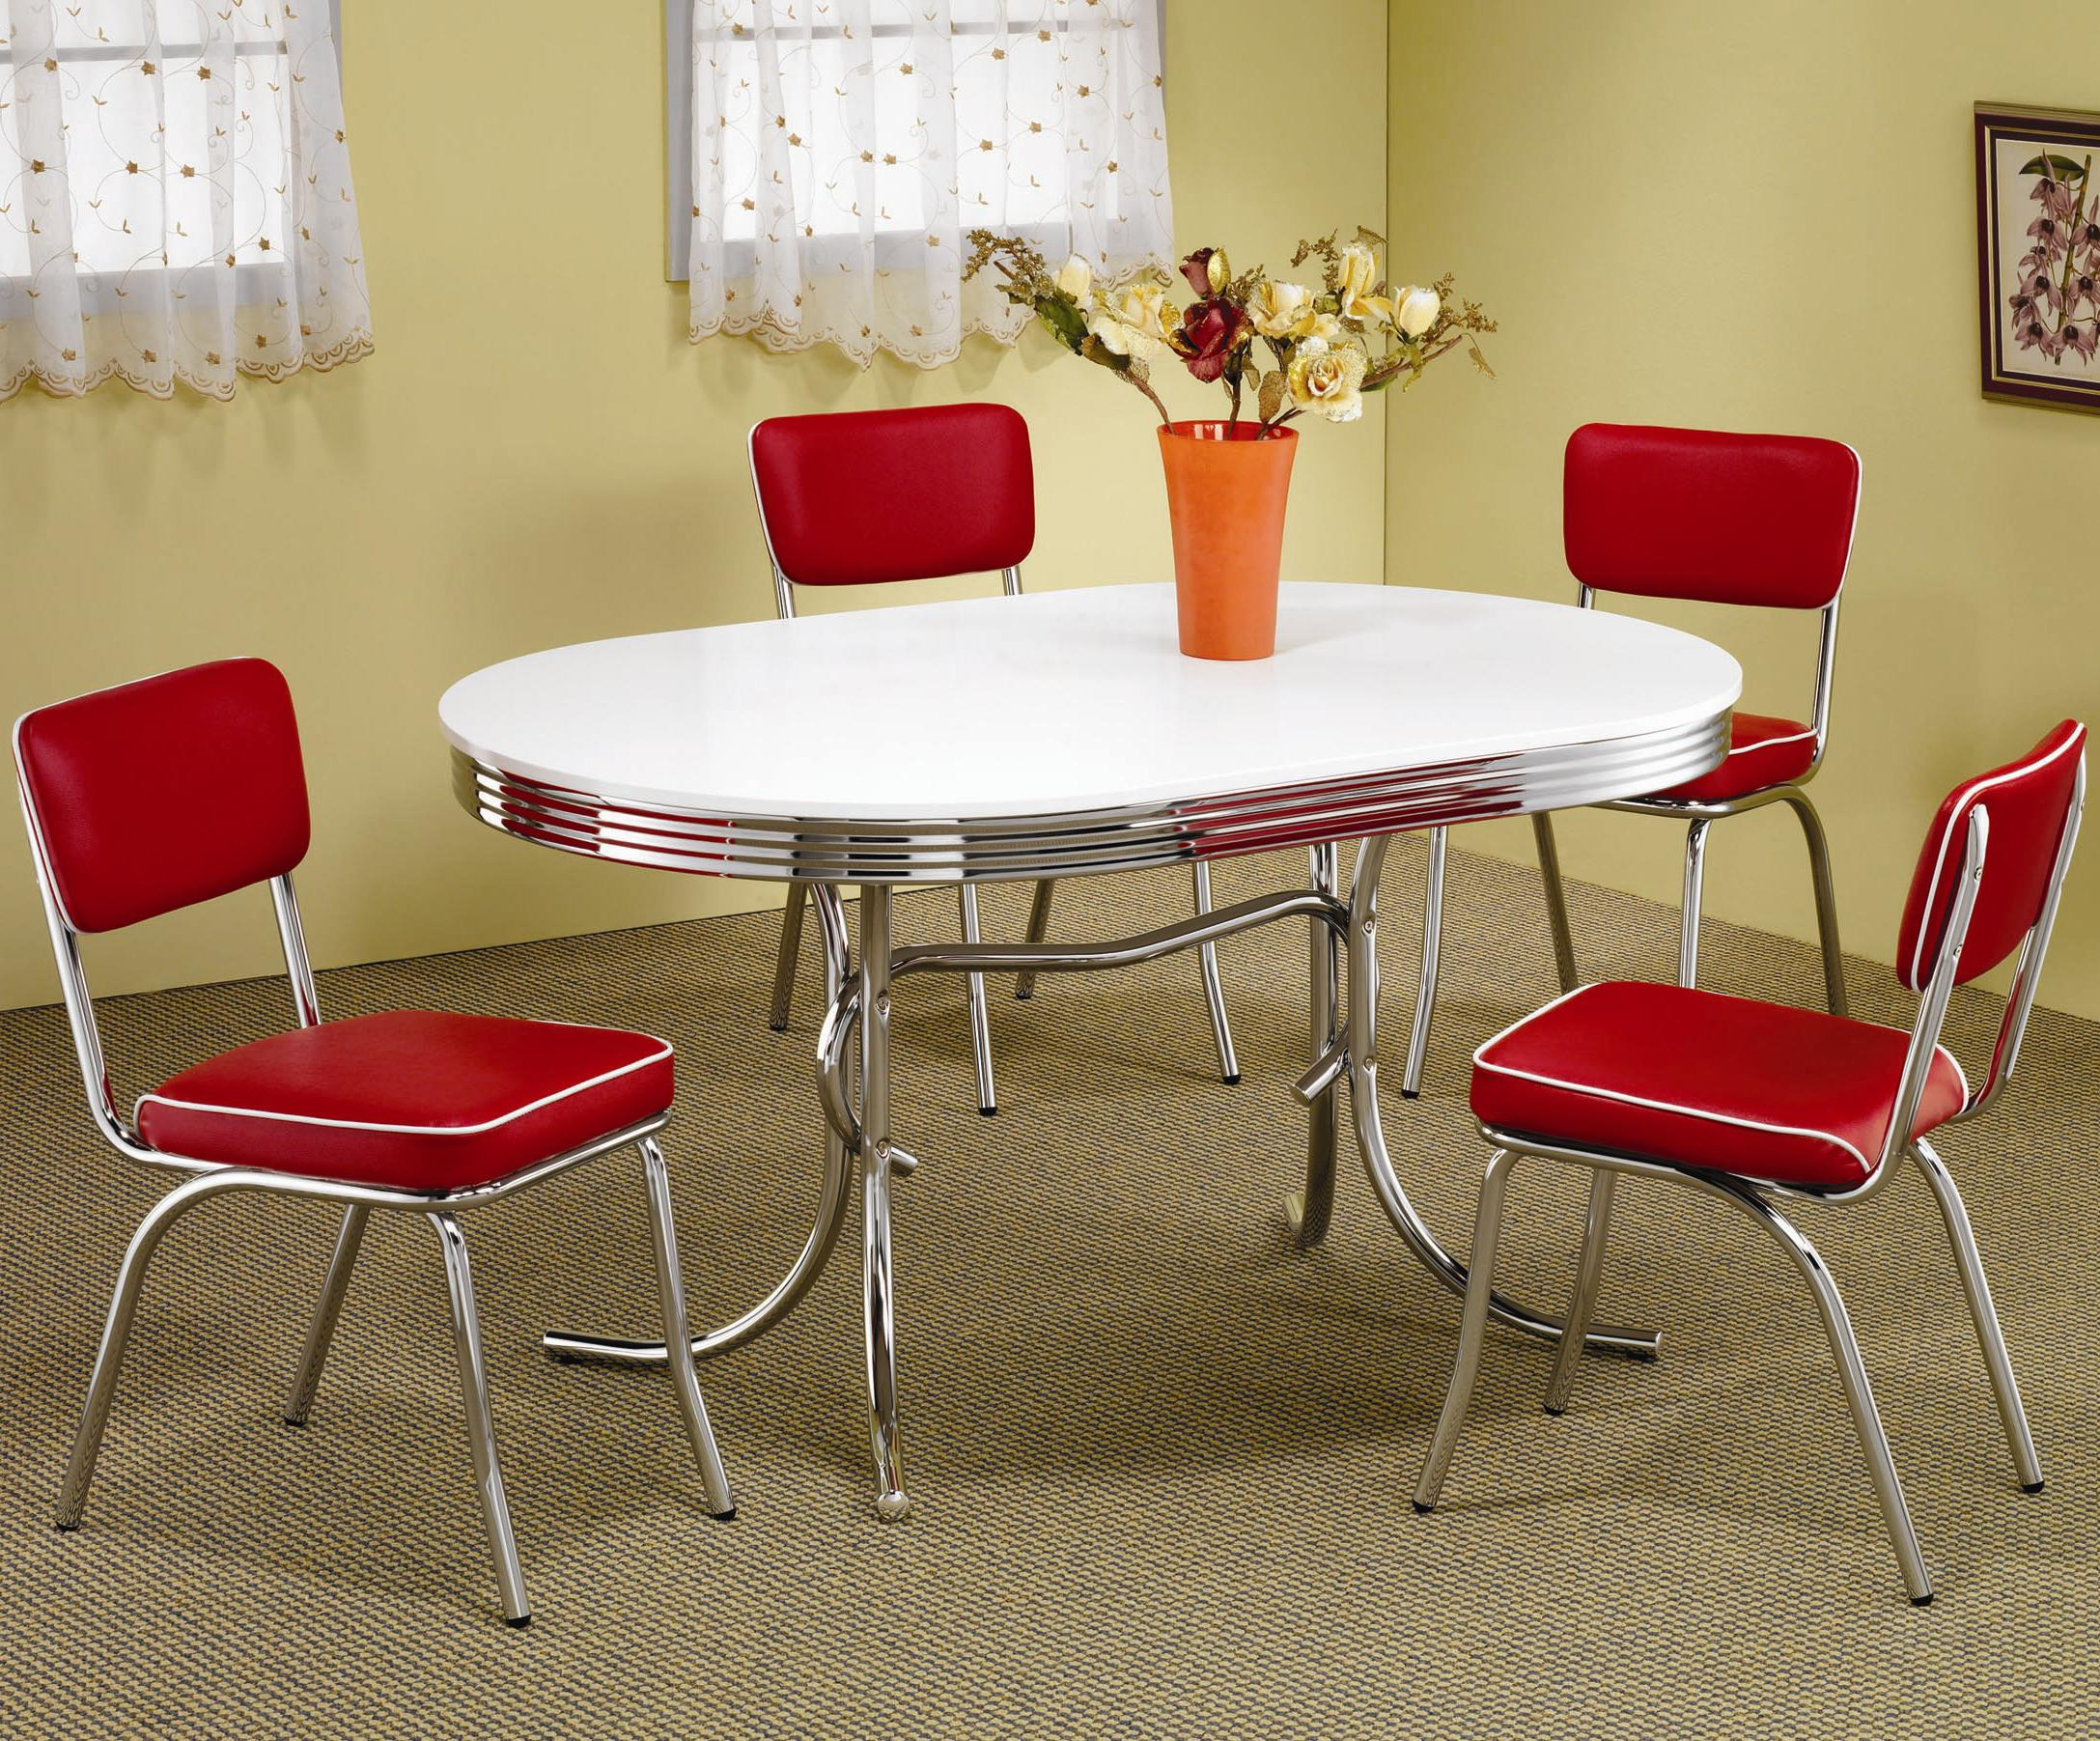 Cleveland 5 Piece Dining Set by Coaster at Standard Furniture